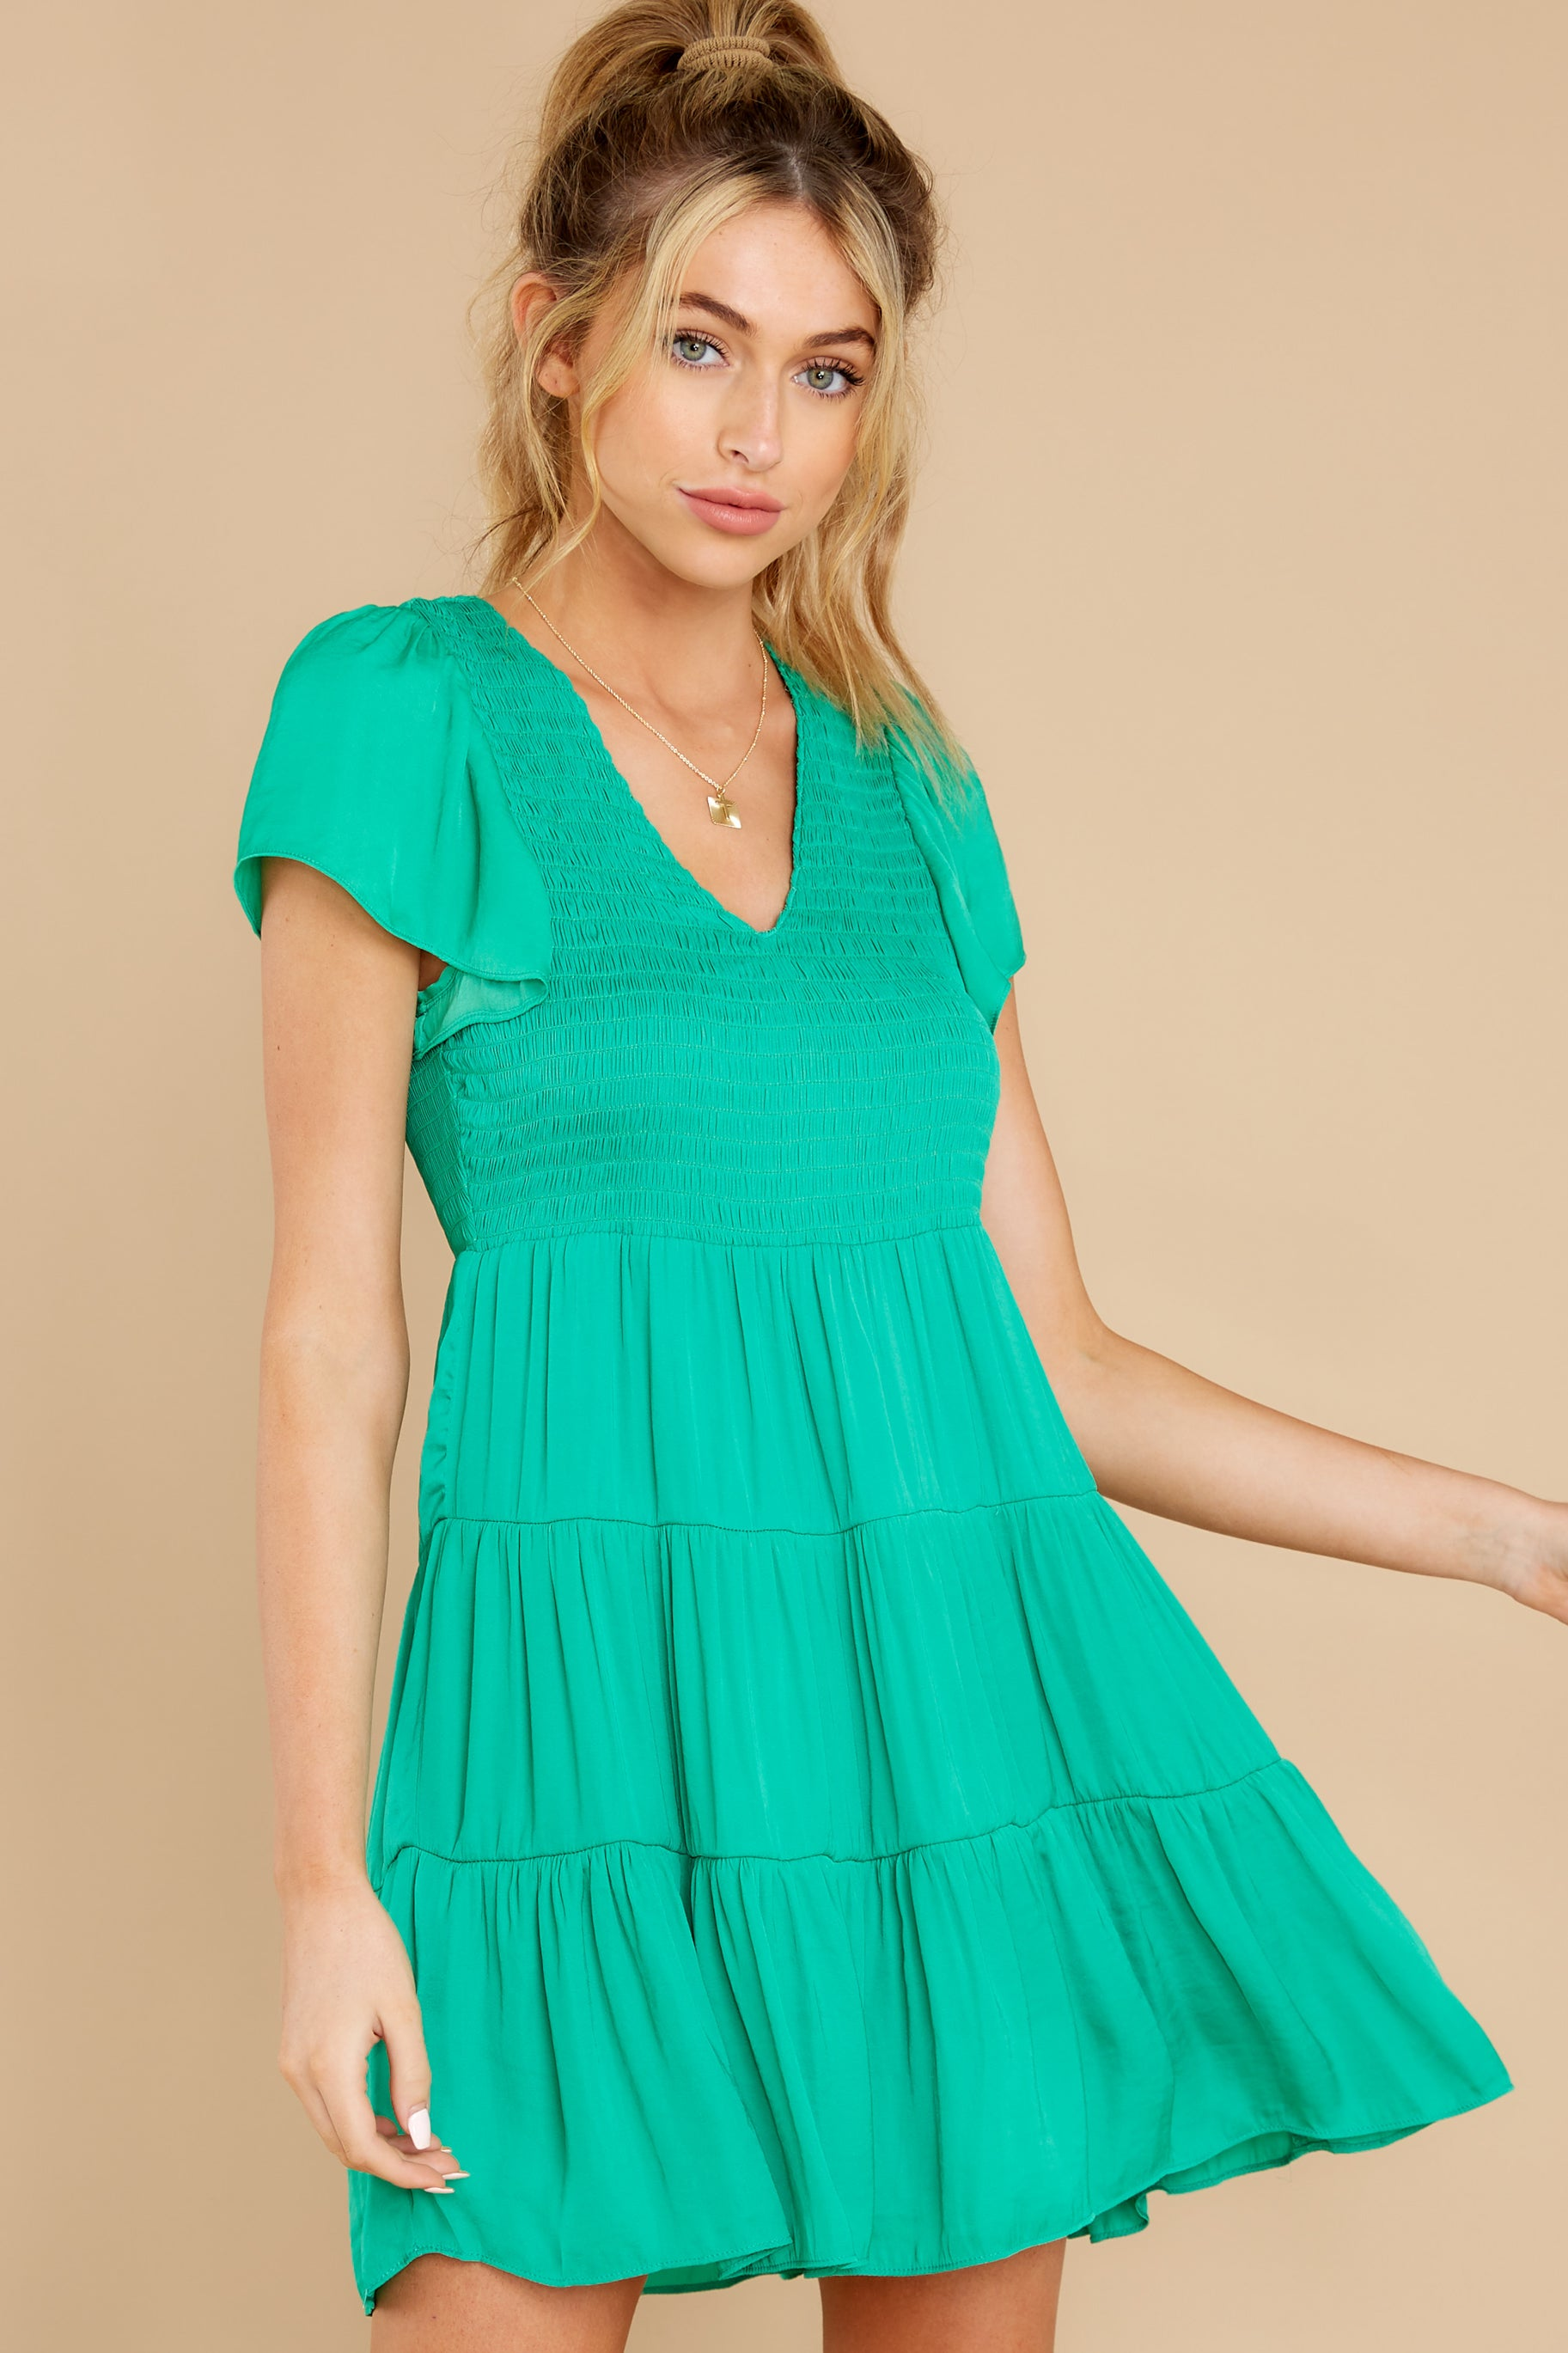 7 End Of The Night Jade Green Dress at reddress.com